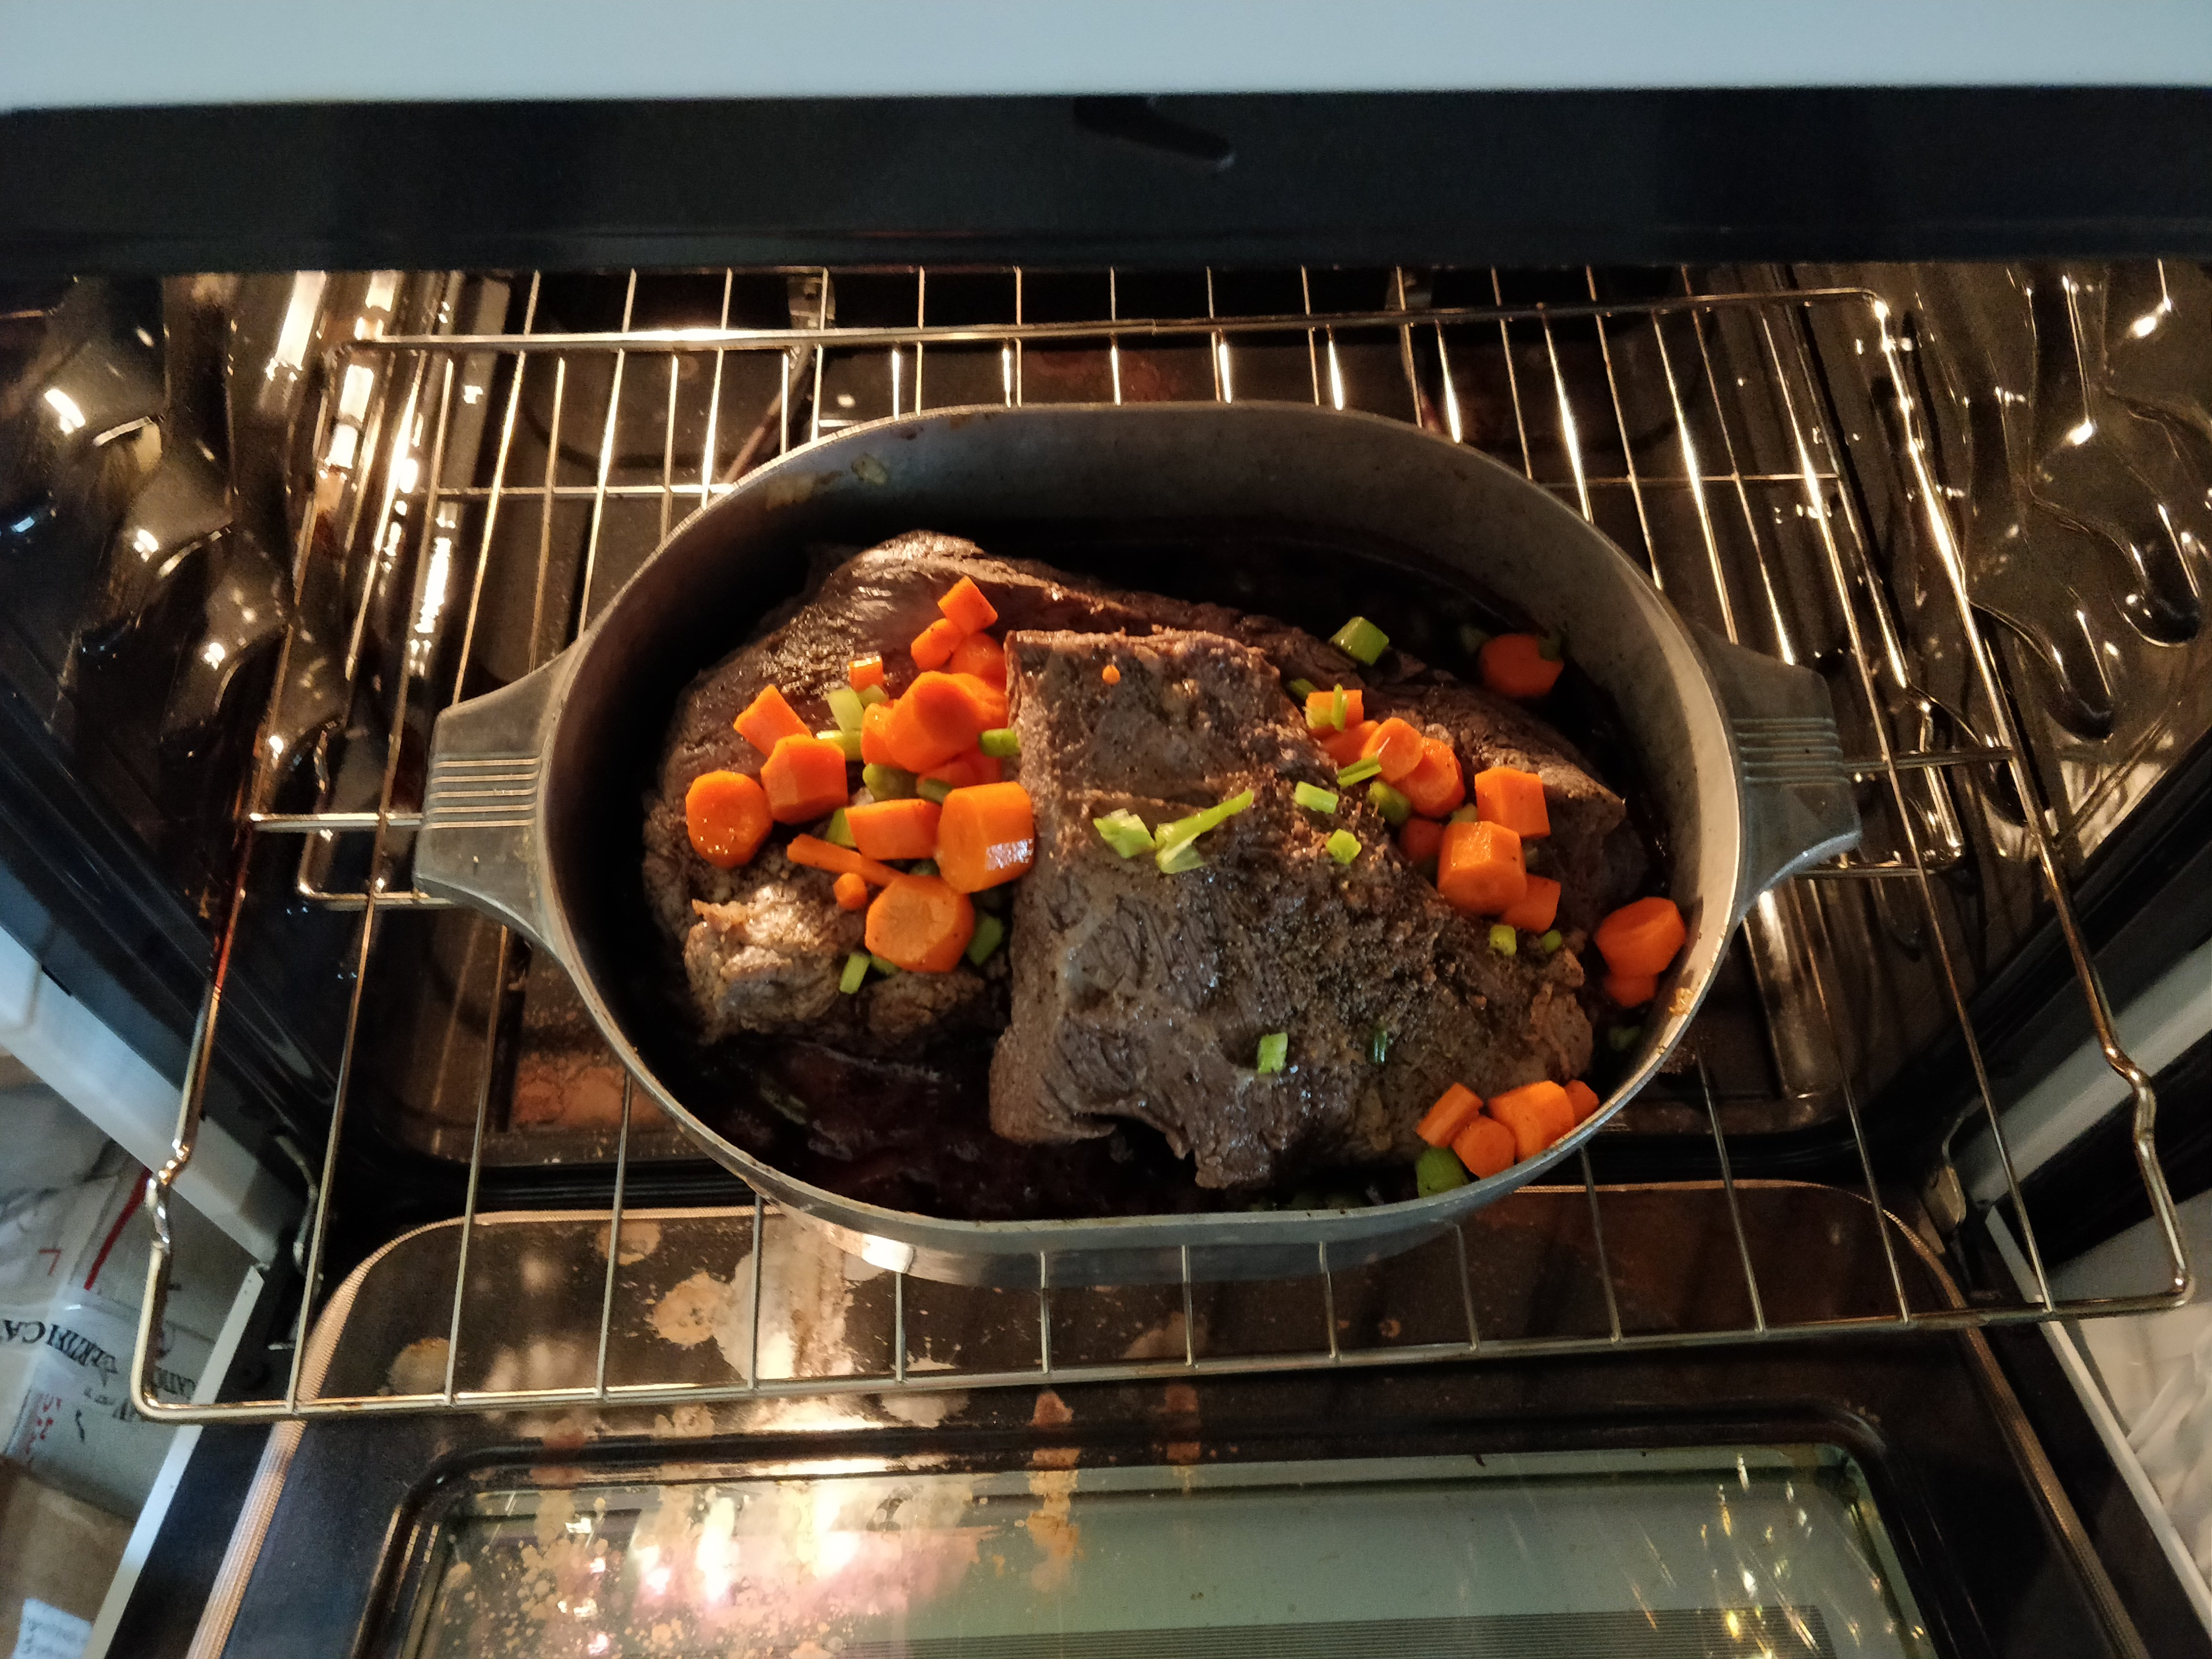 One of our roasts in pot in oven